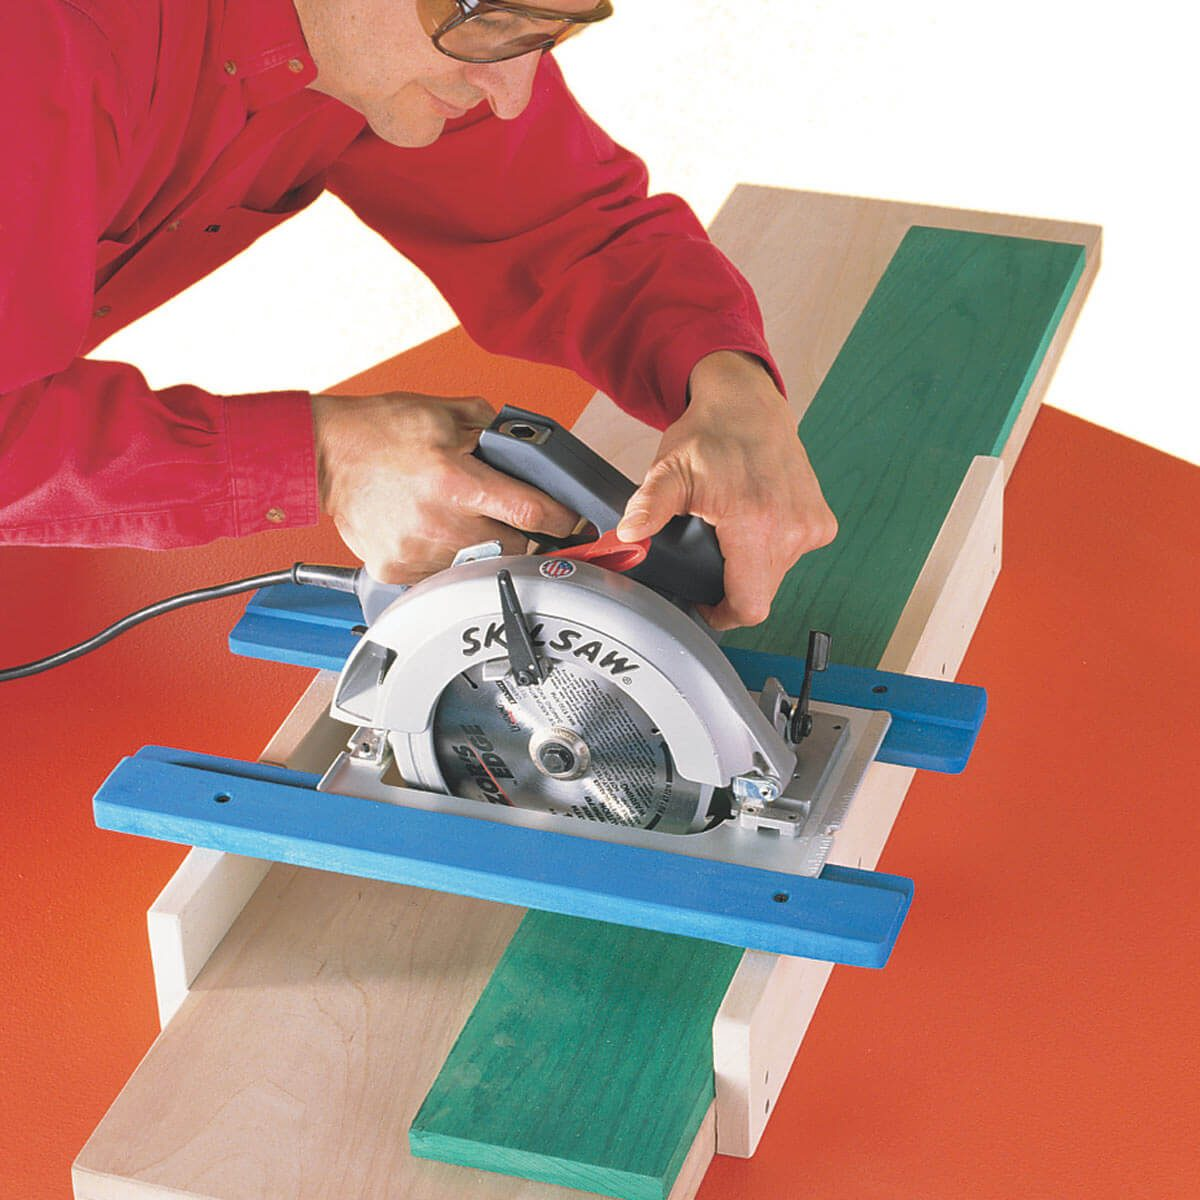 radial arm saw make shift